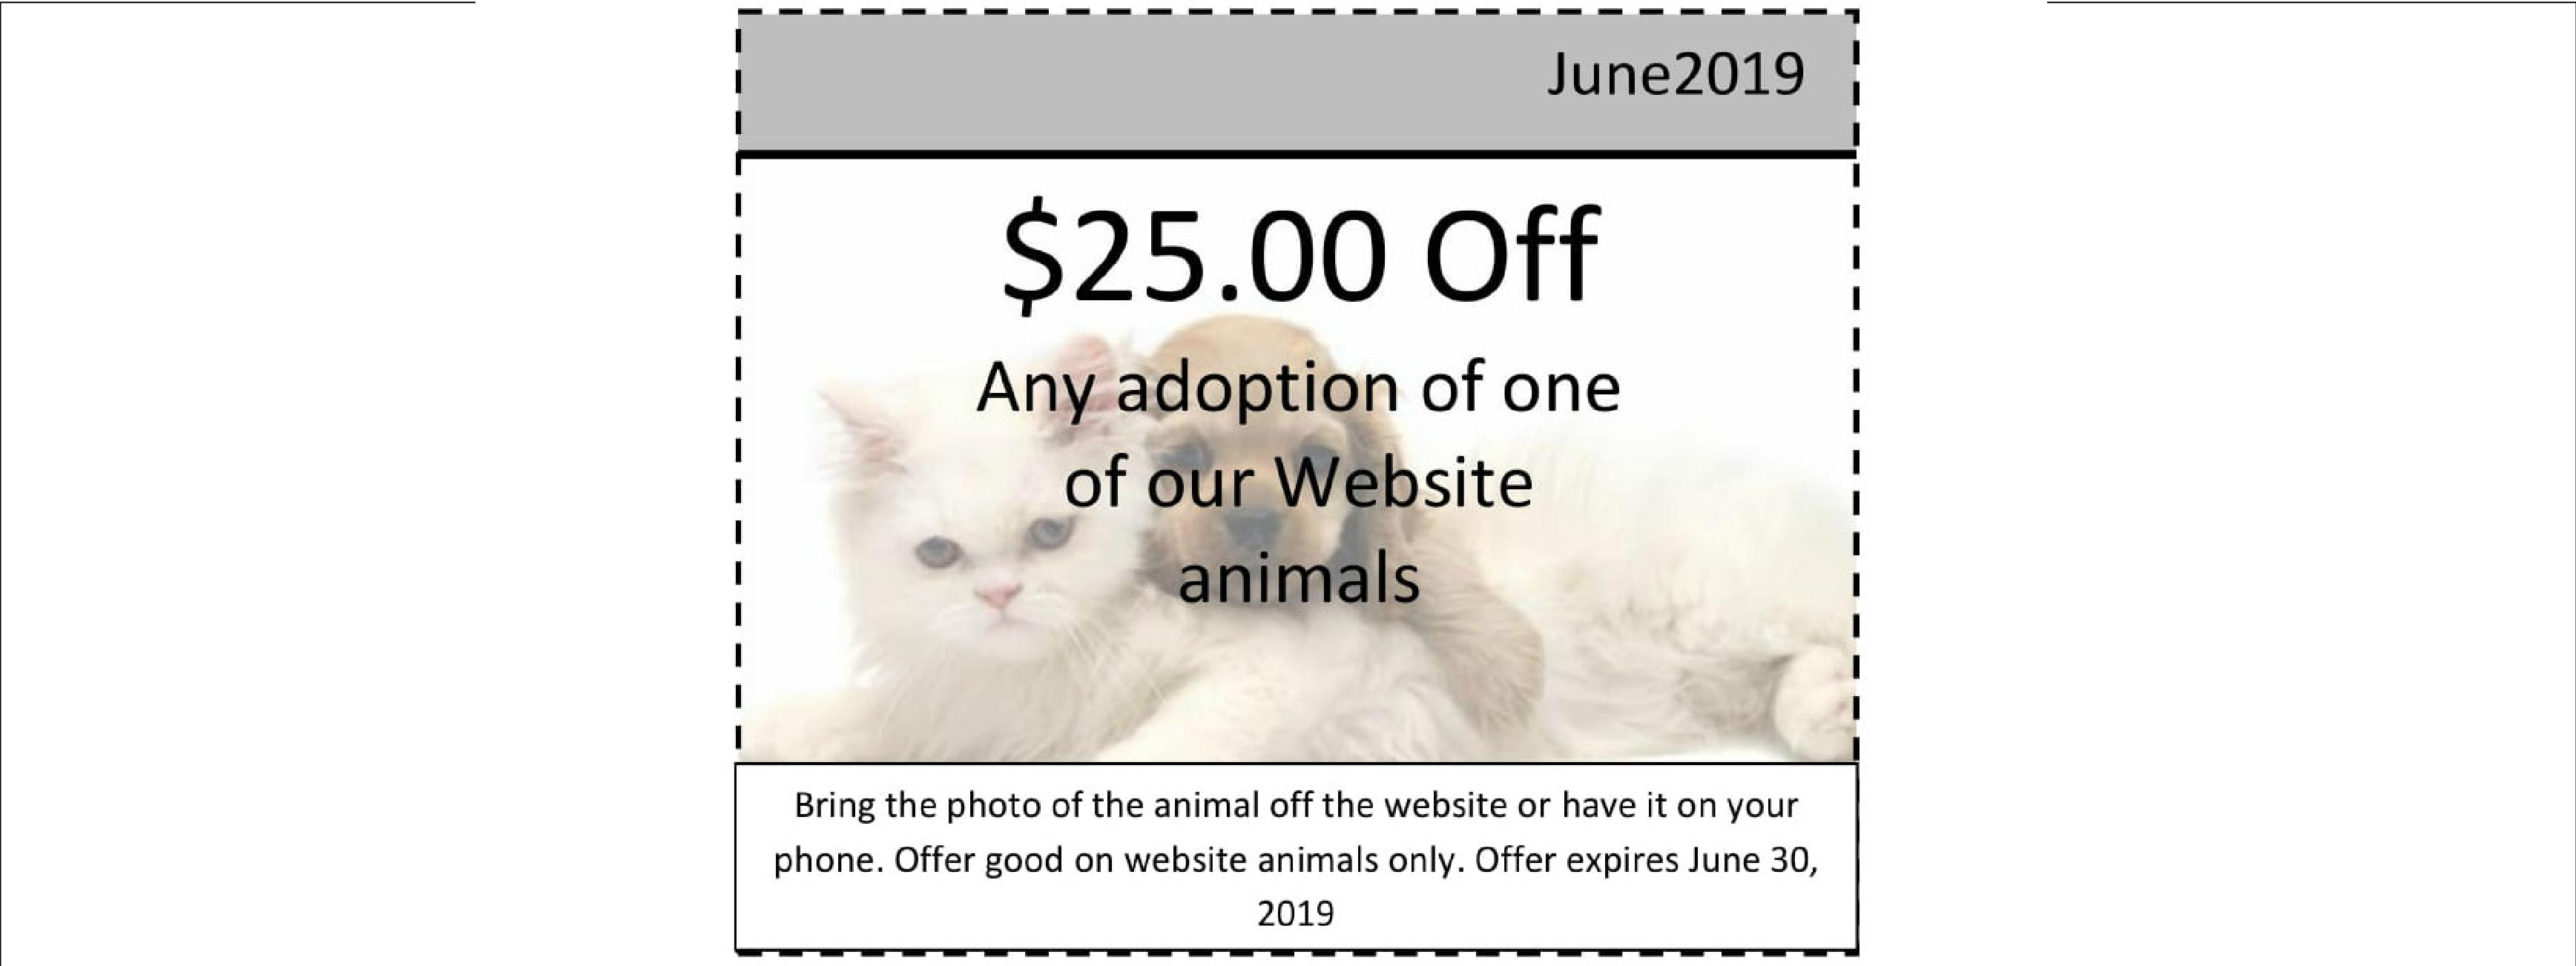 $25 dollars off any animal up for adoption on our website , offer expires June 30, 2019.